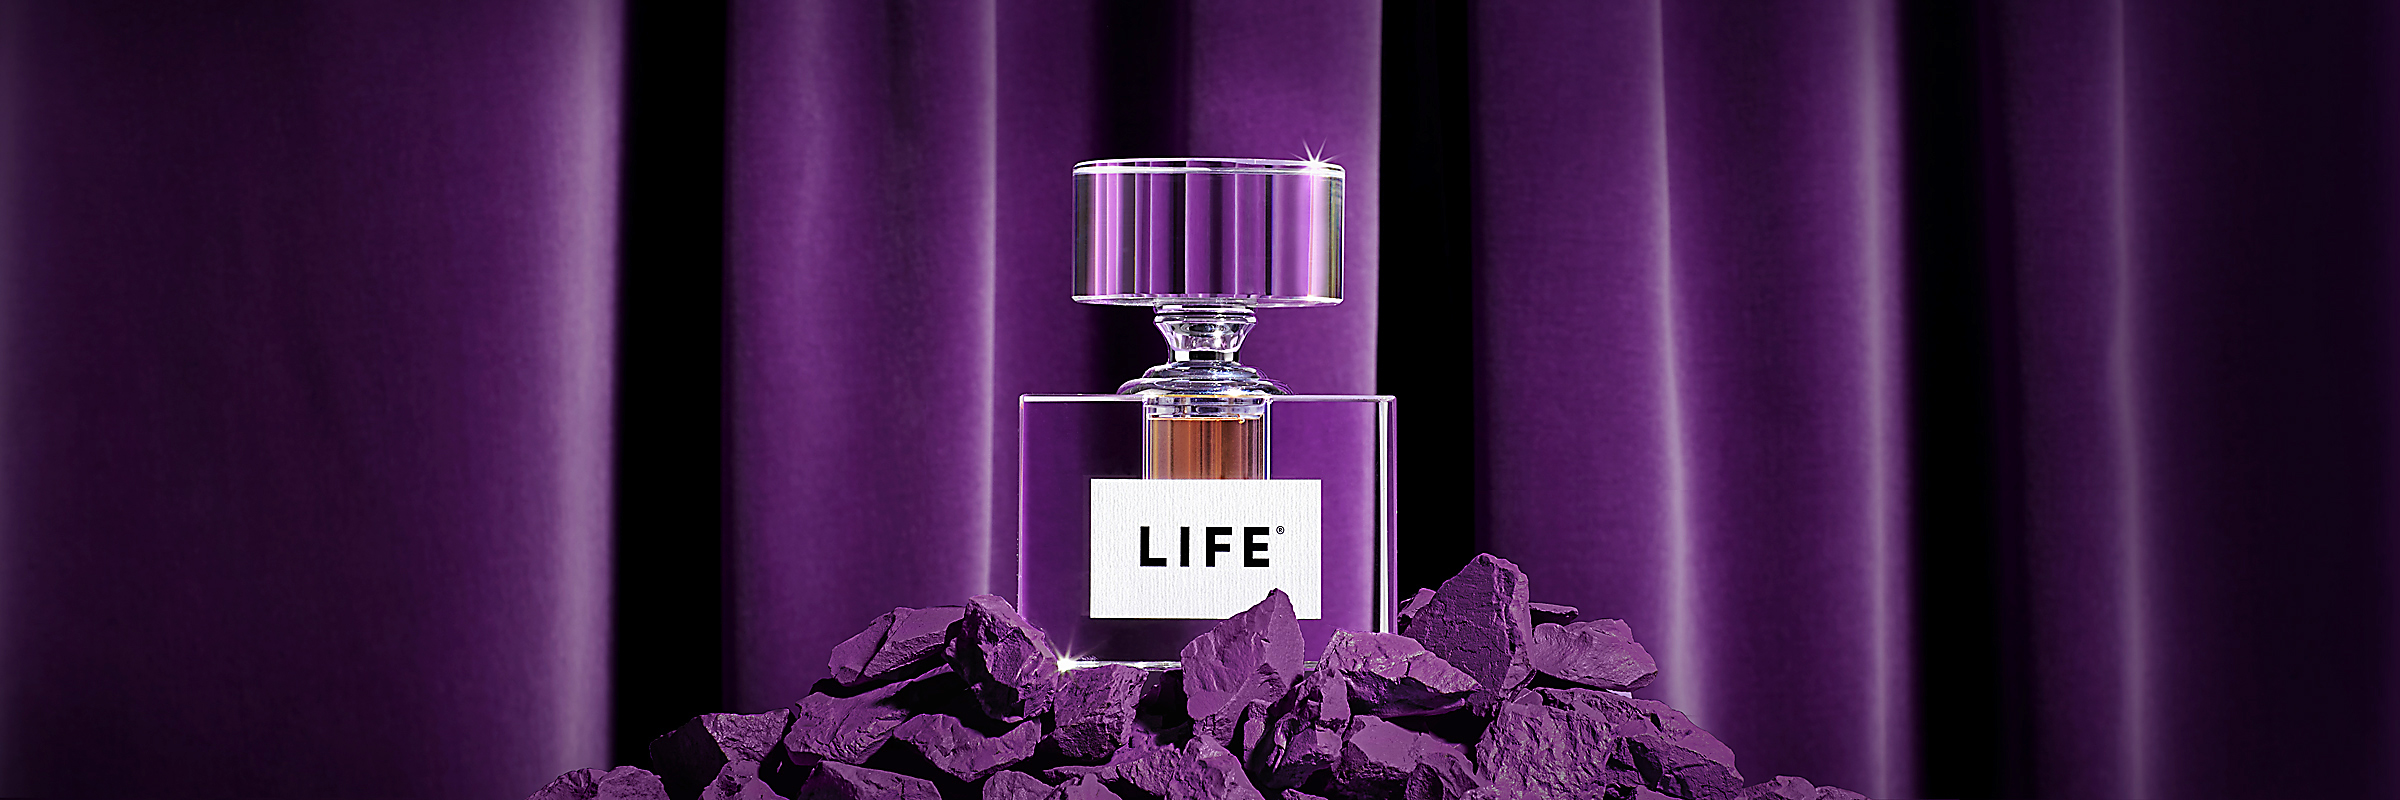 Bottle of Life on purple rocks in front of a purple curtain